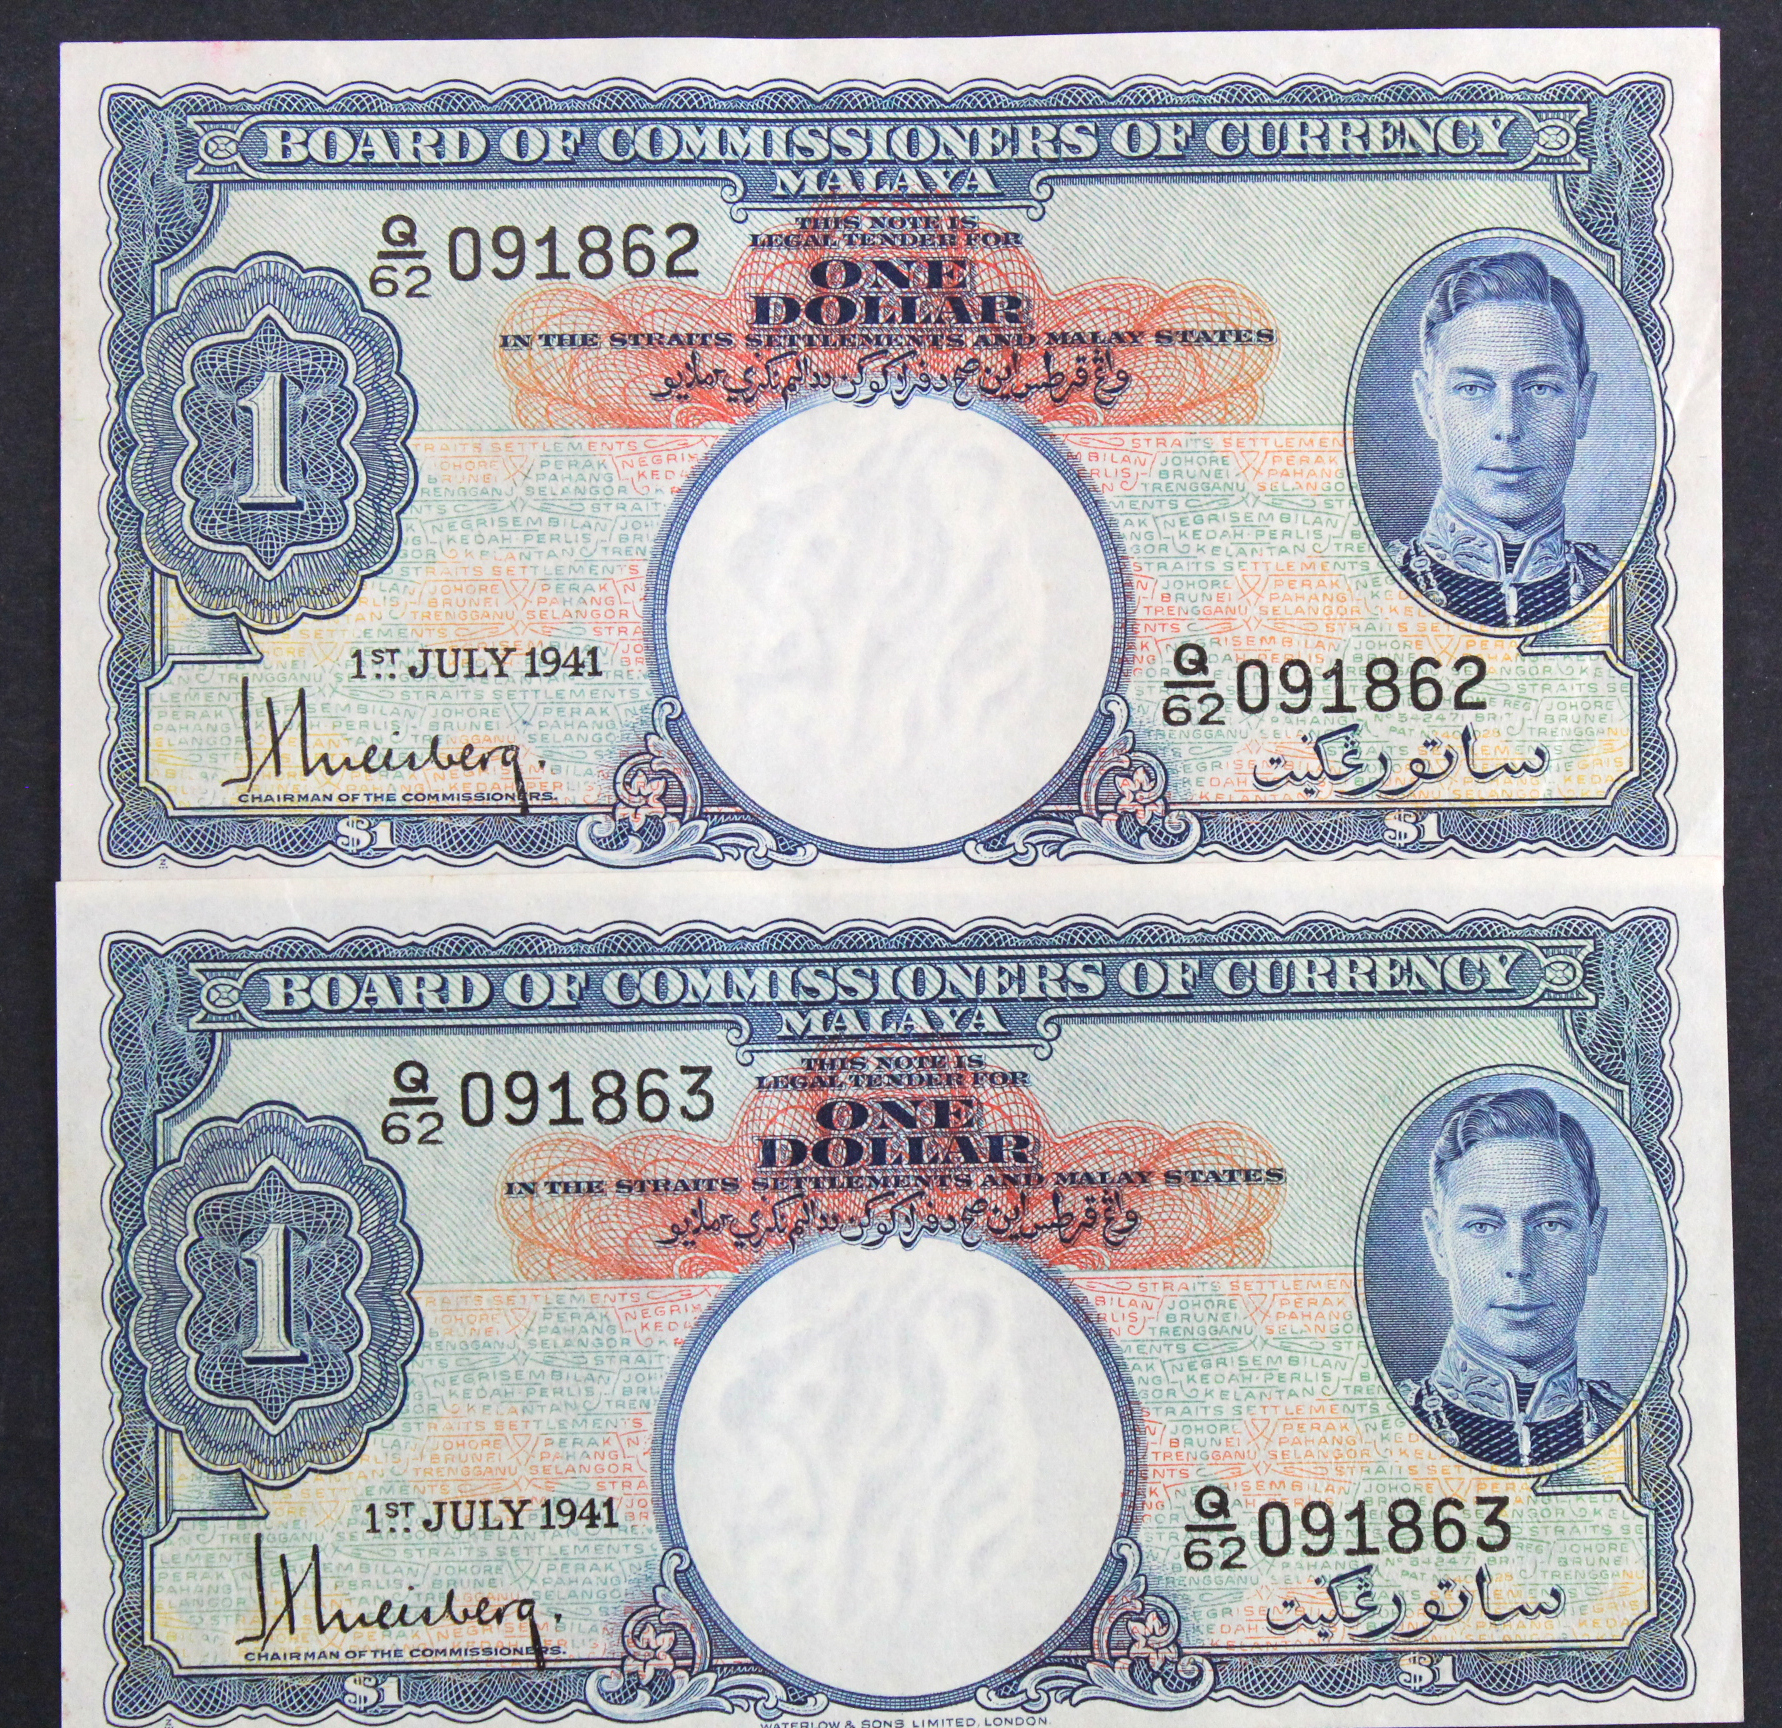 Malaya 1 Dollar (2) dated 1st July 1941, portrait King George VI at right, a consecutively